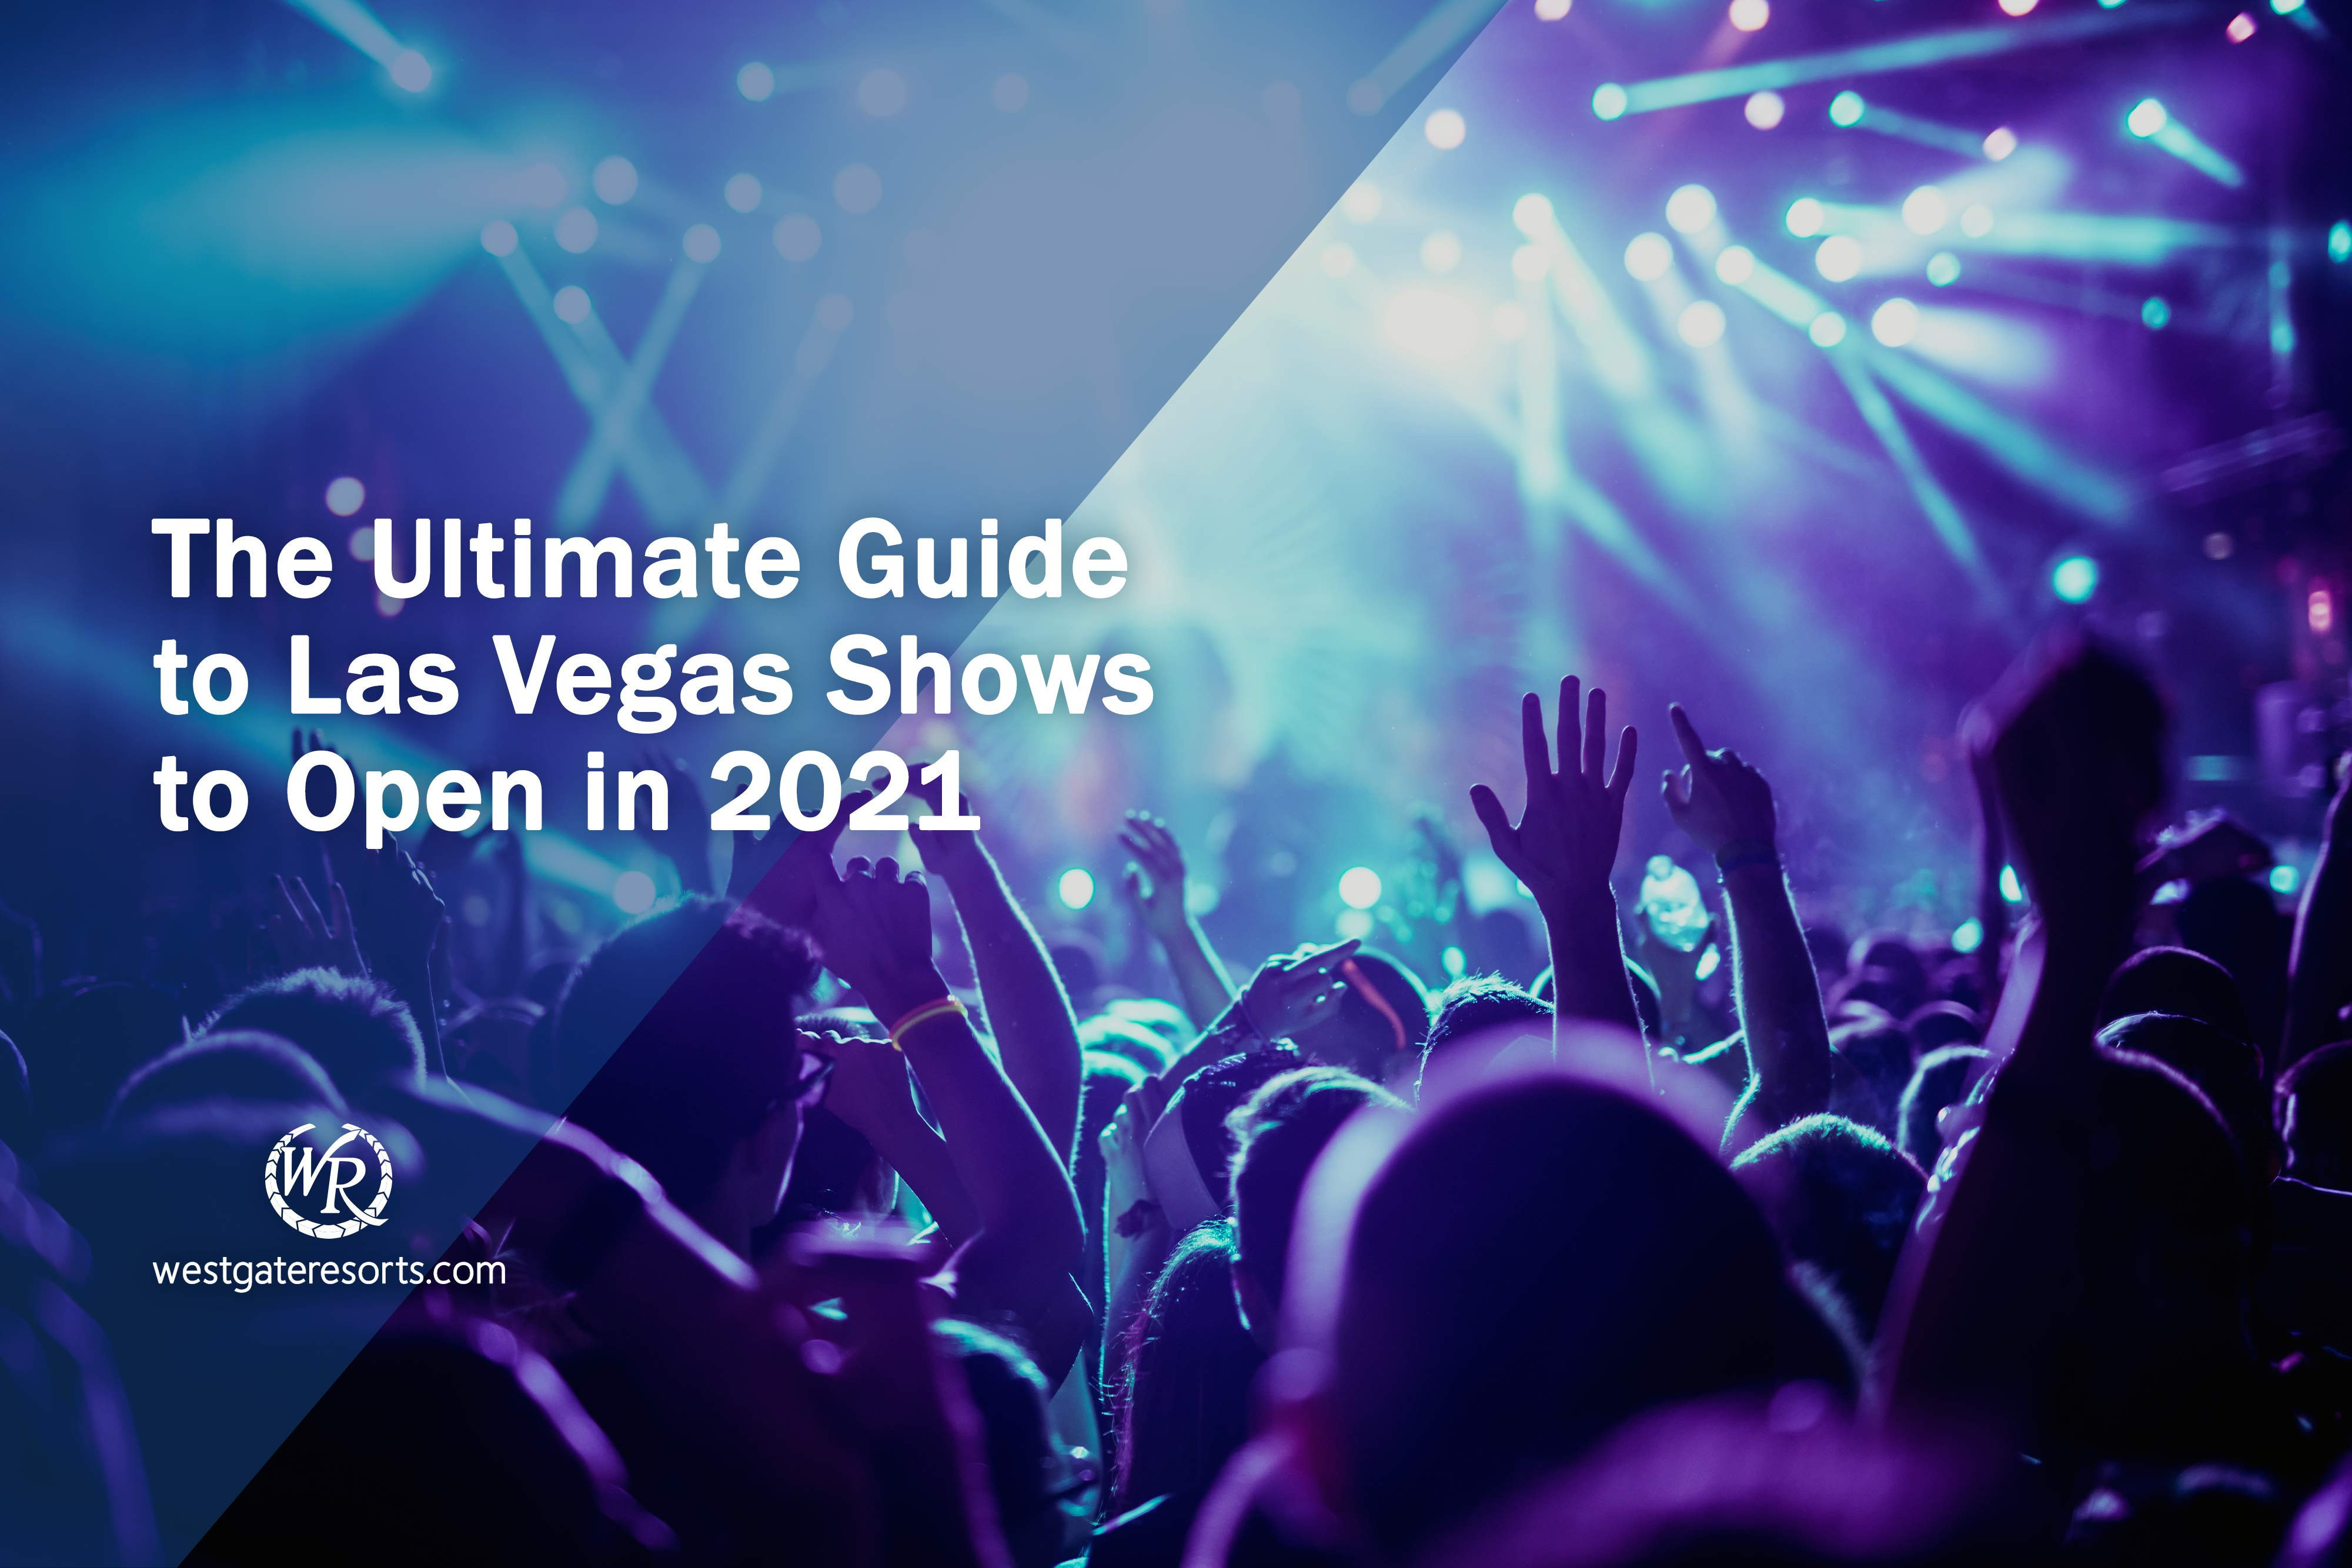 The Ultimate Guide to Las Vegas Shows to Open in 2021